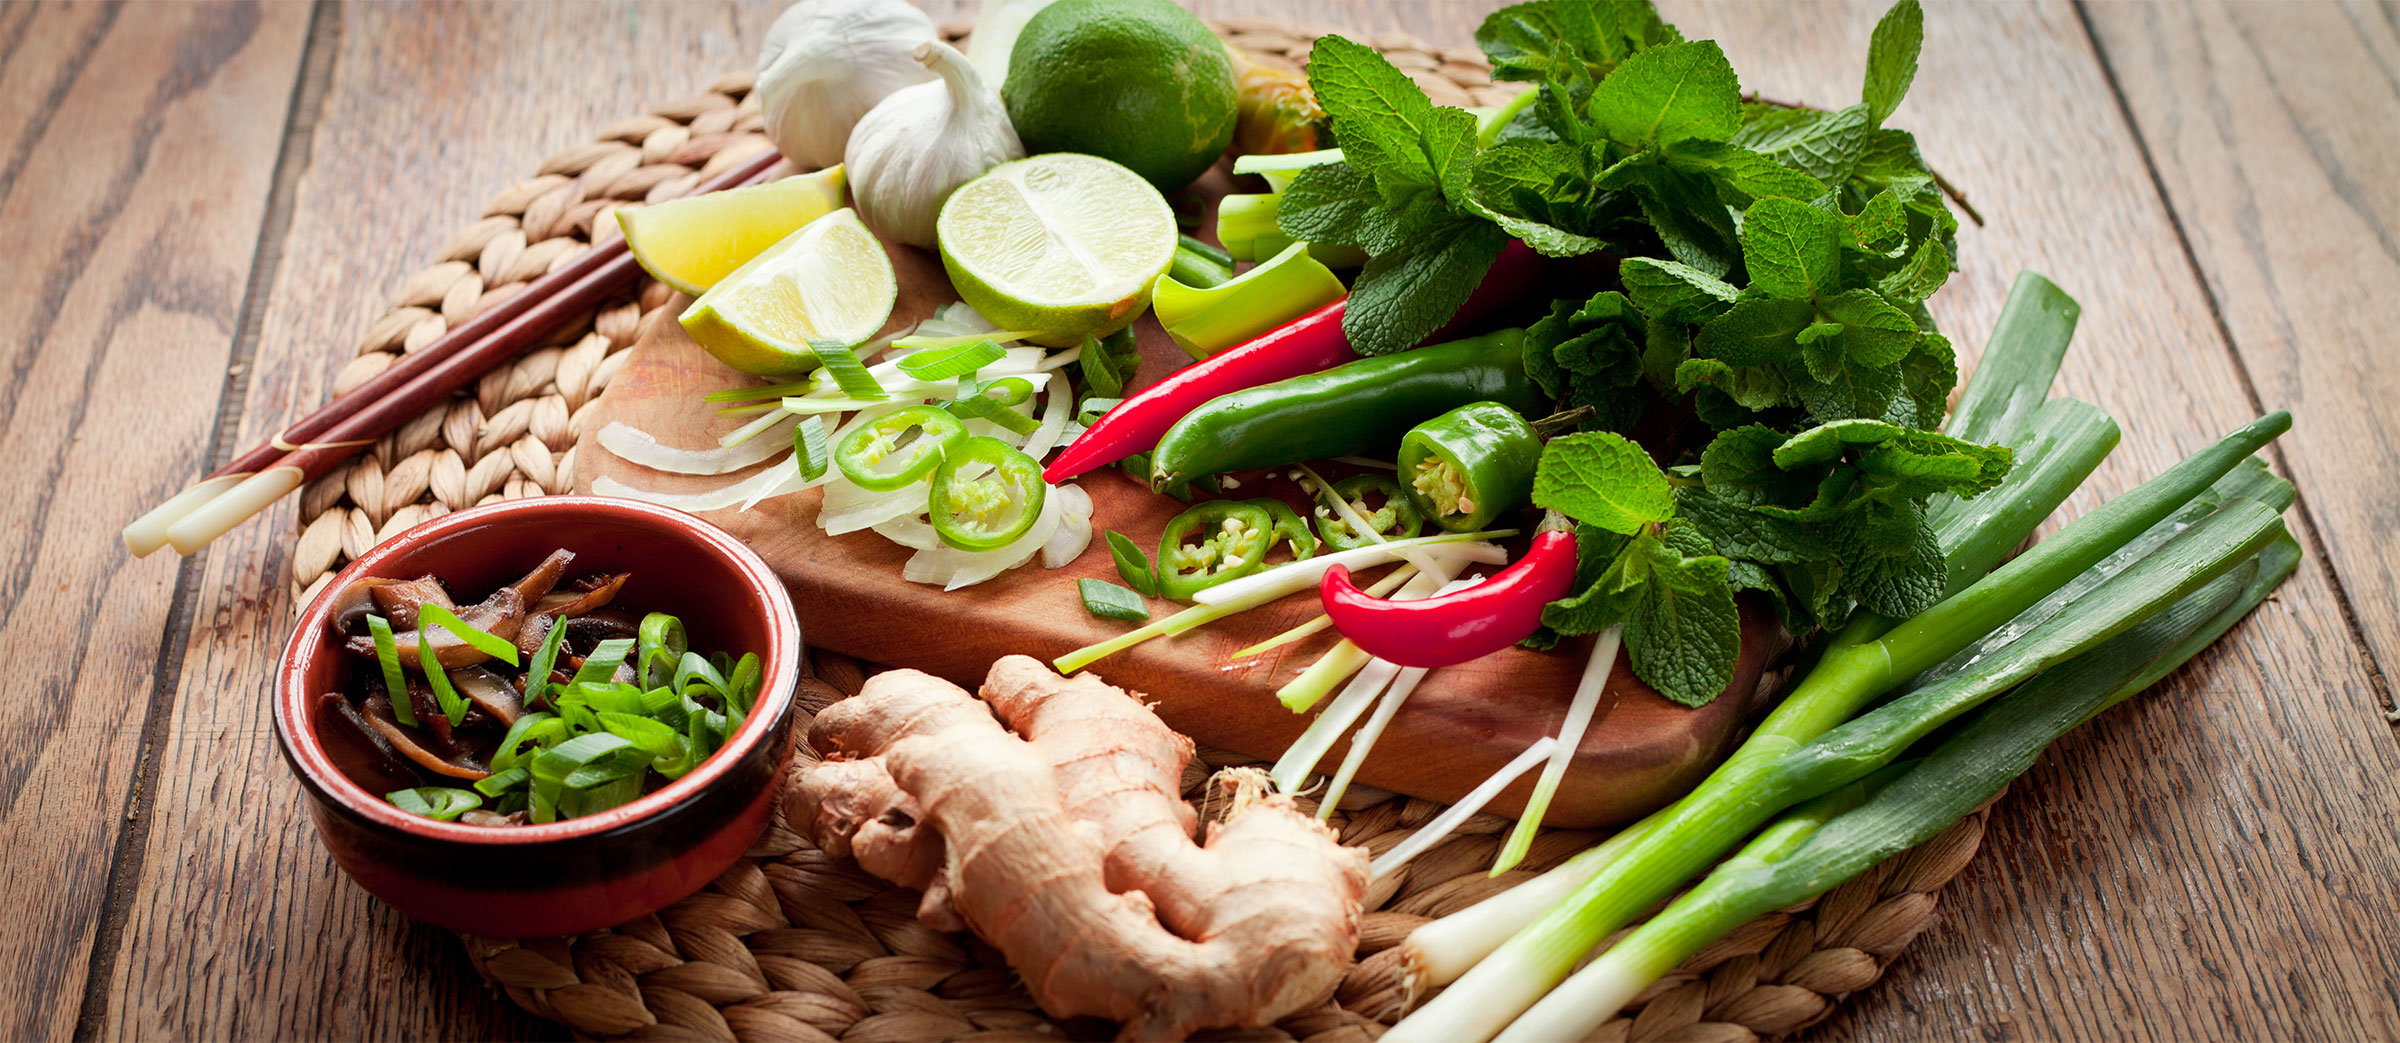 asian-food-cooking-board-ingredients-lime-chili--1